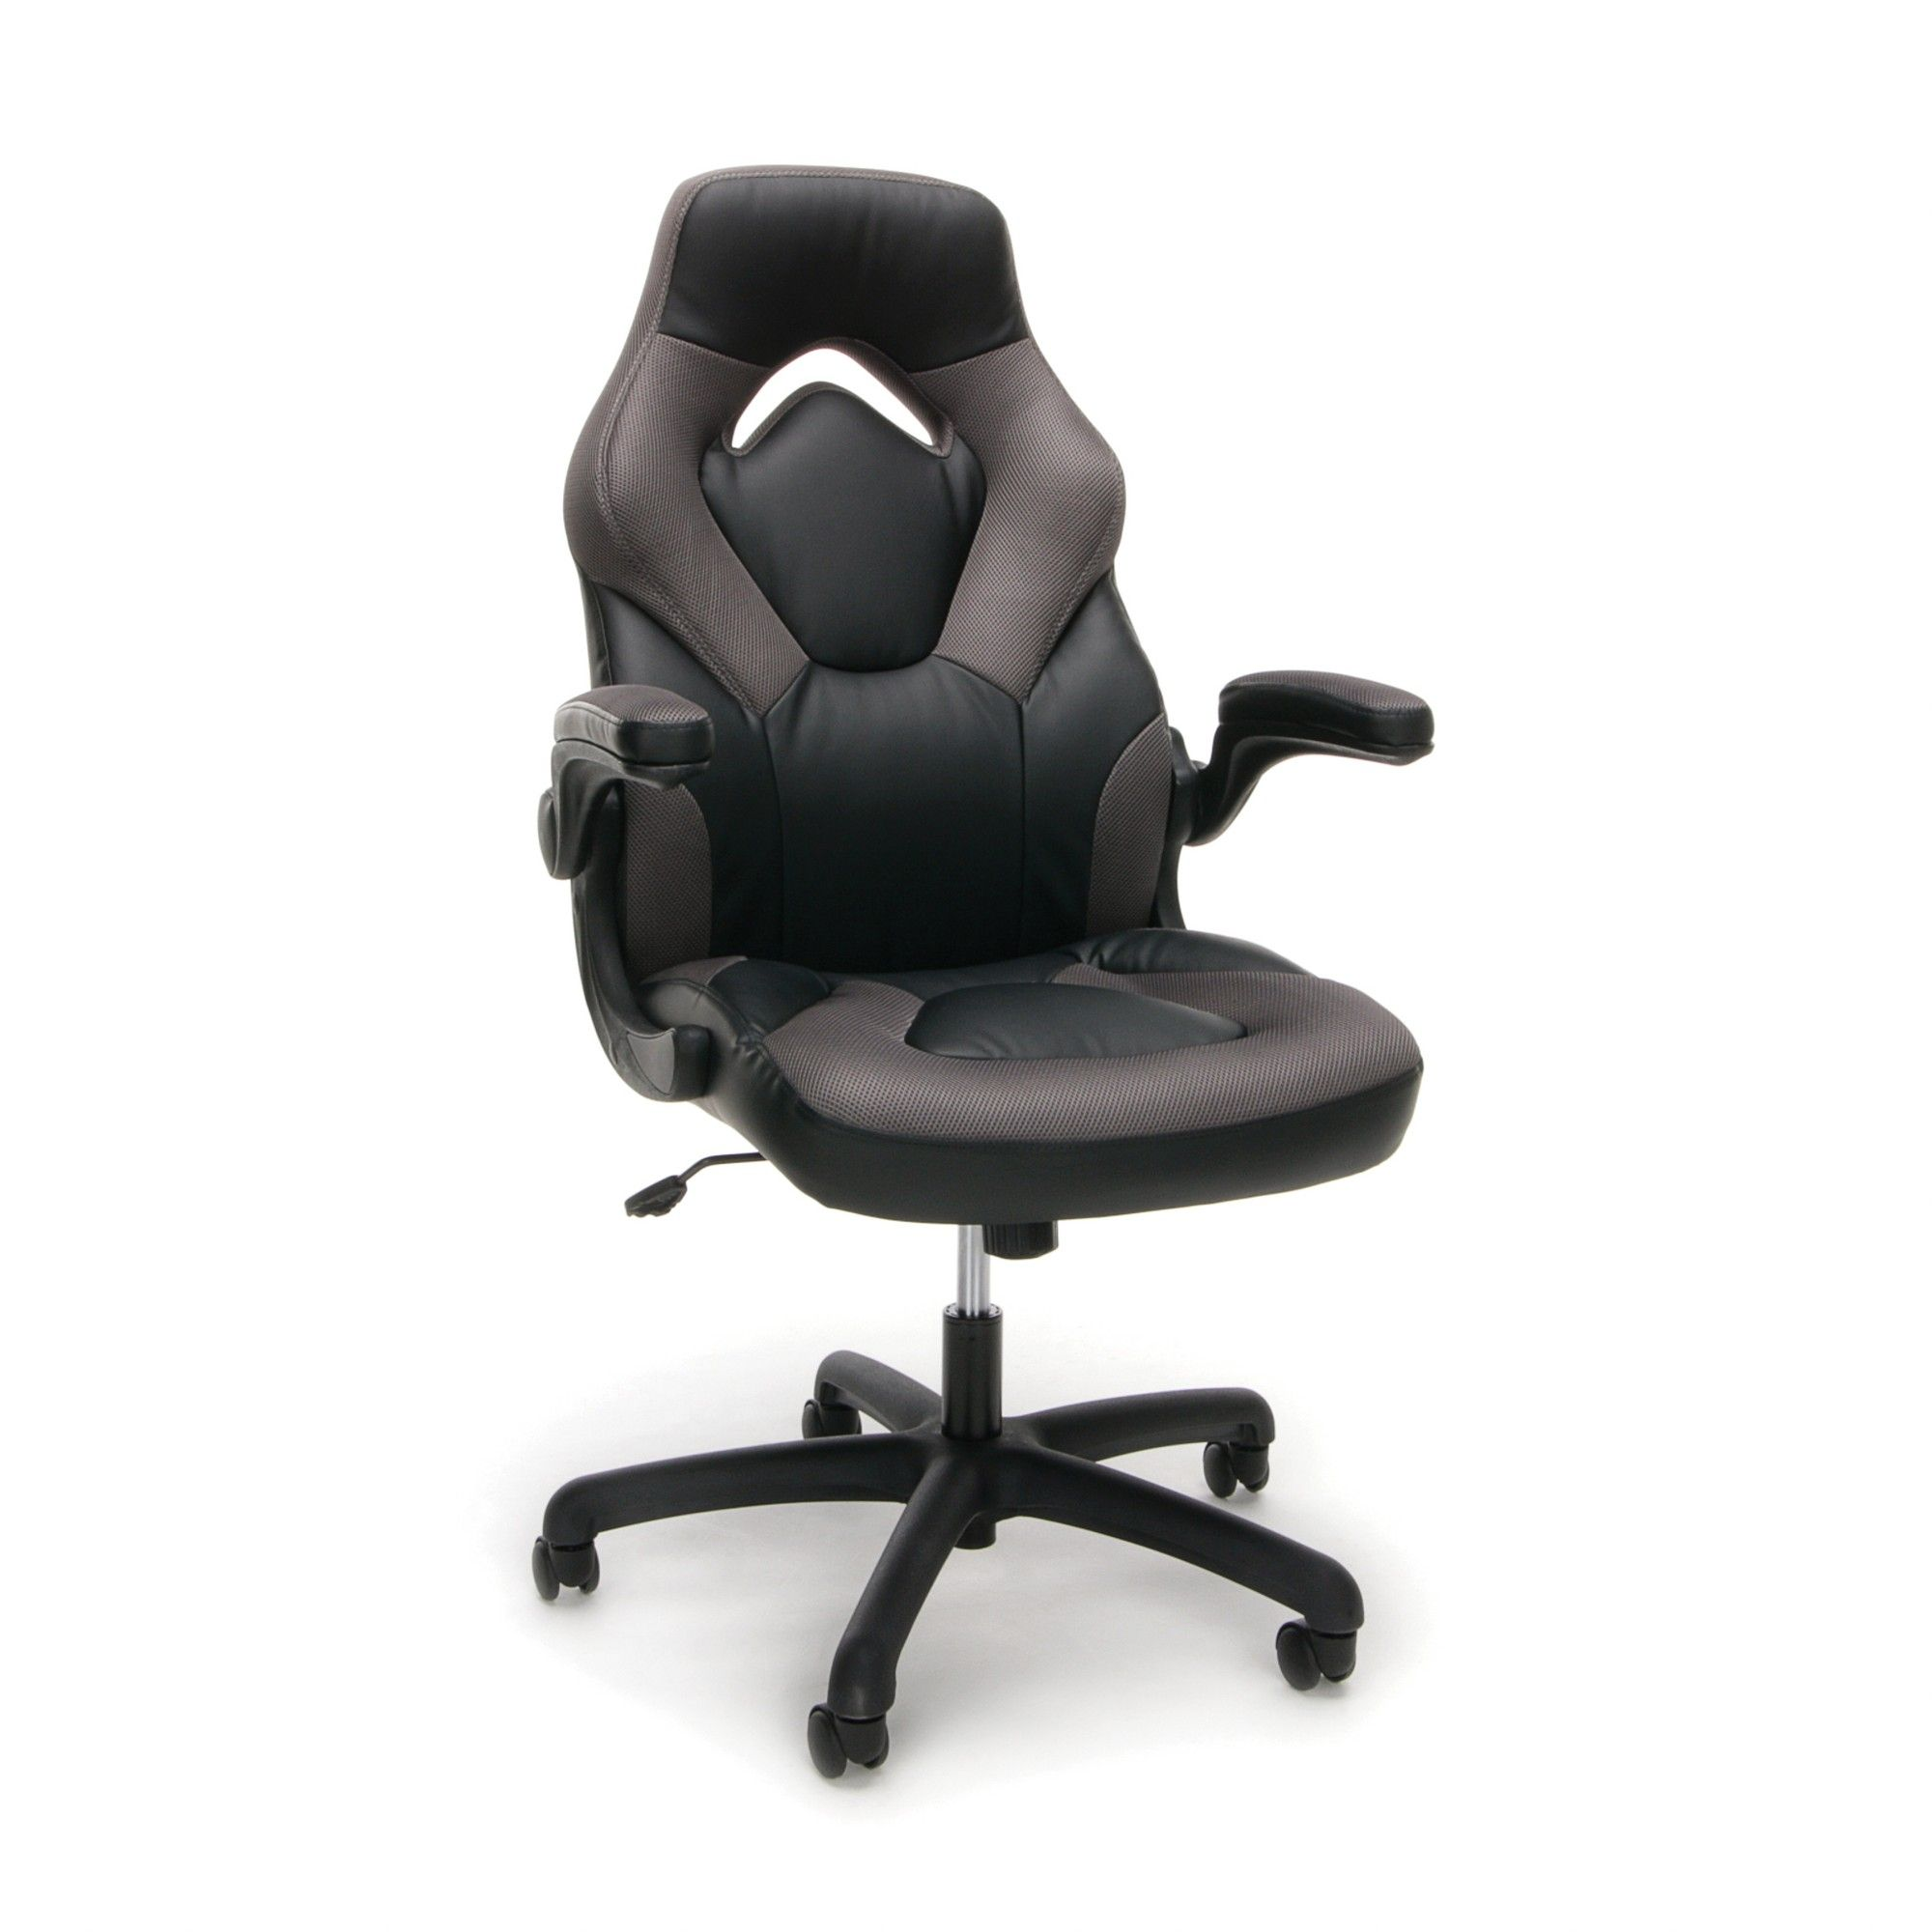 Adjustable Leather/Mesh Gaming/Office Chair with Wheels